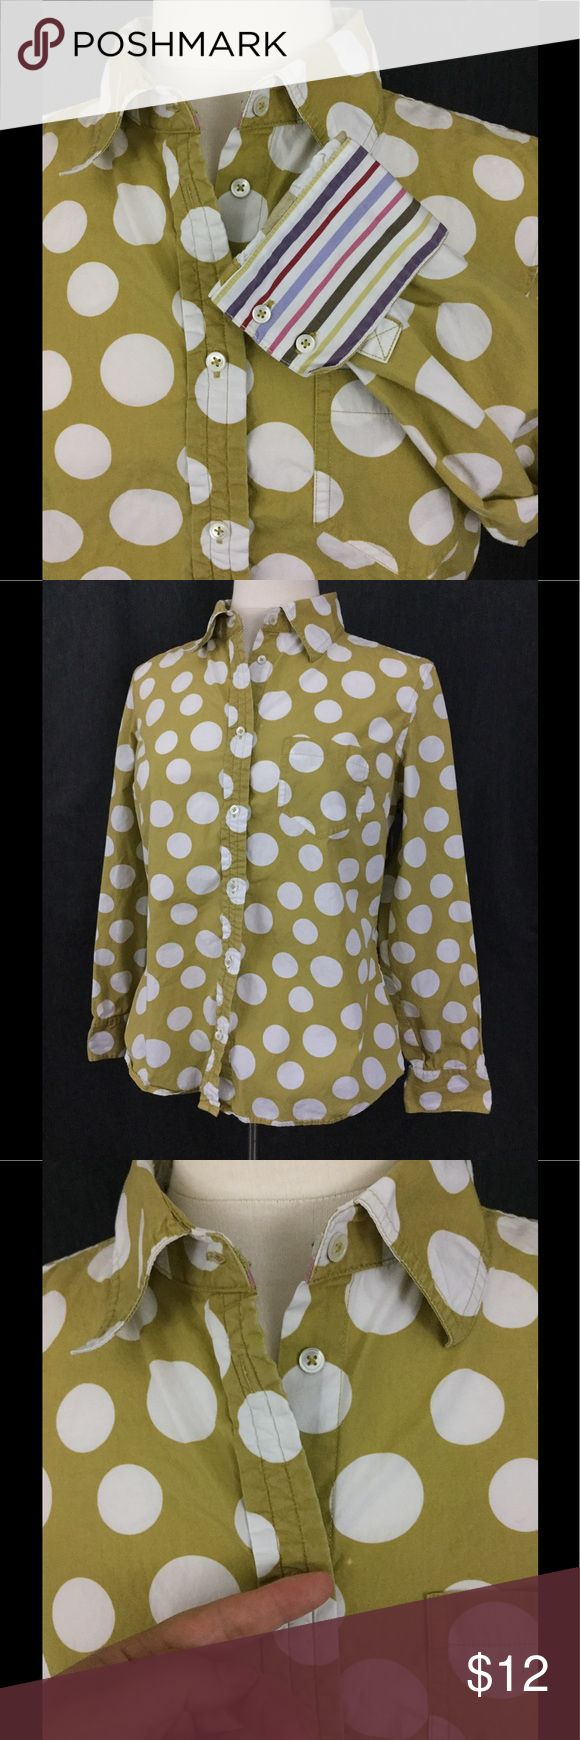 "Boden flip contrasting cuff button down shirt Big polka dot print in green and off white with contrasting striped cuffs, one small spot shown in pic 3, really fun layered under short sleeve tees for a preppy yet laid back look. Chest measures 20"" across, length is 24"" size 16 but will fit many 12-14, runs a bit small in my opinion. Boden Tops Button Down Shirts"